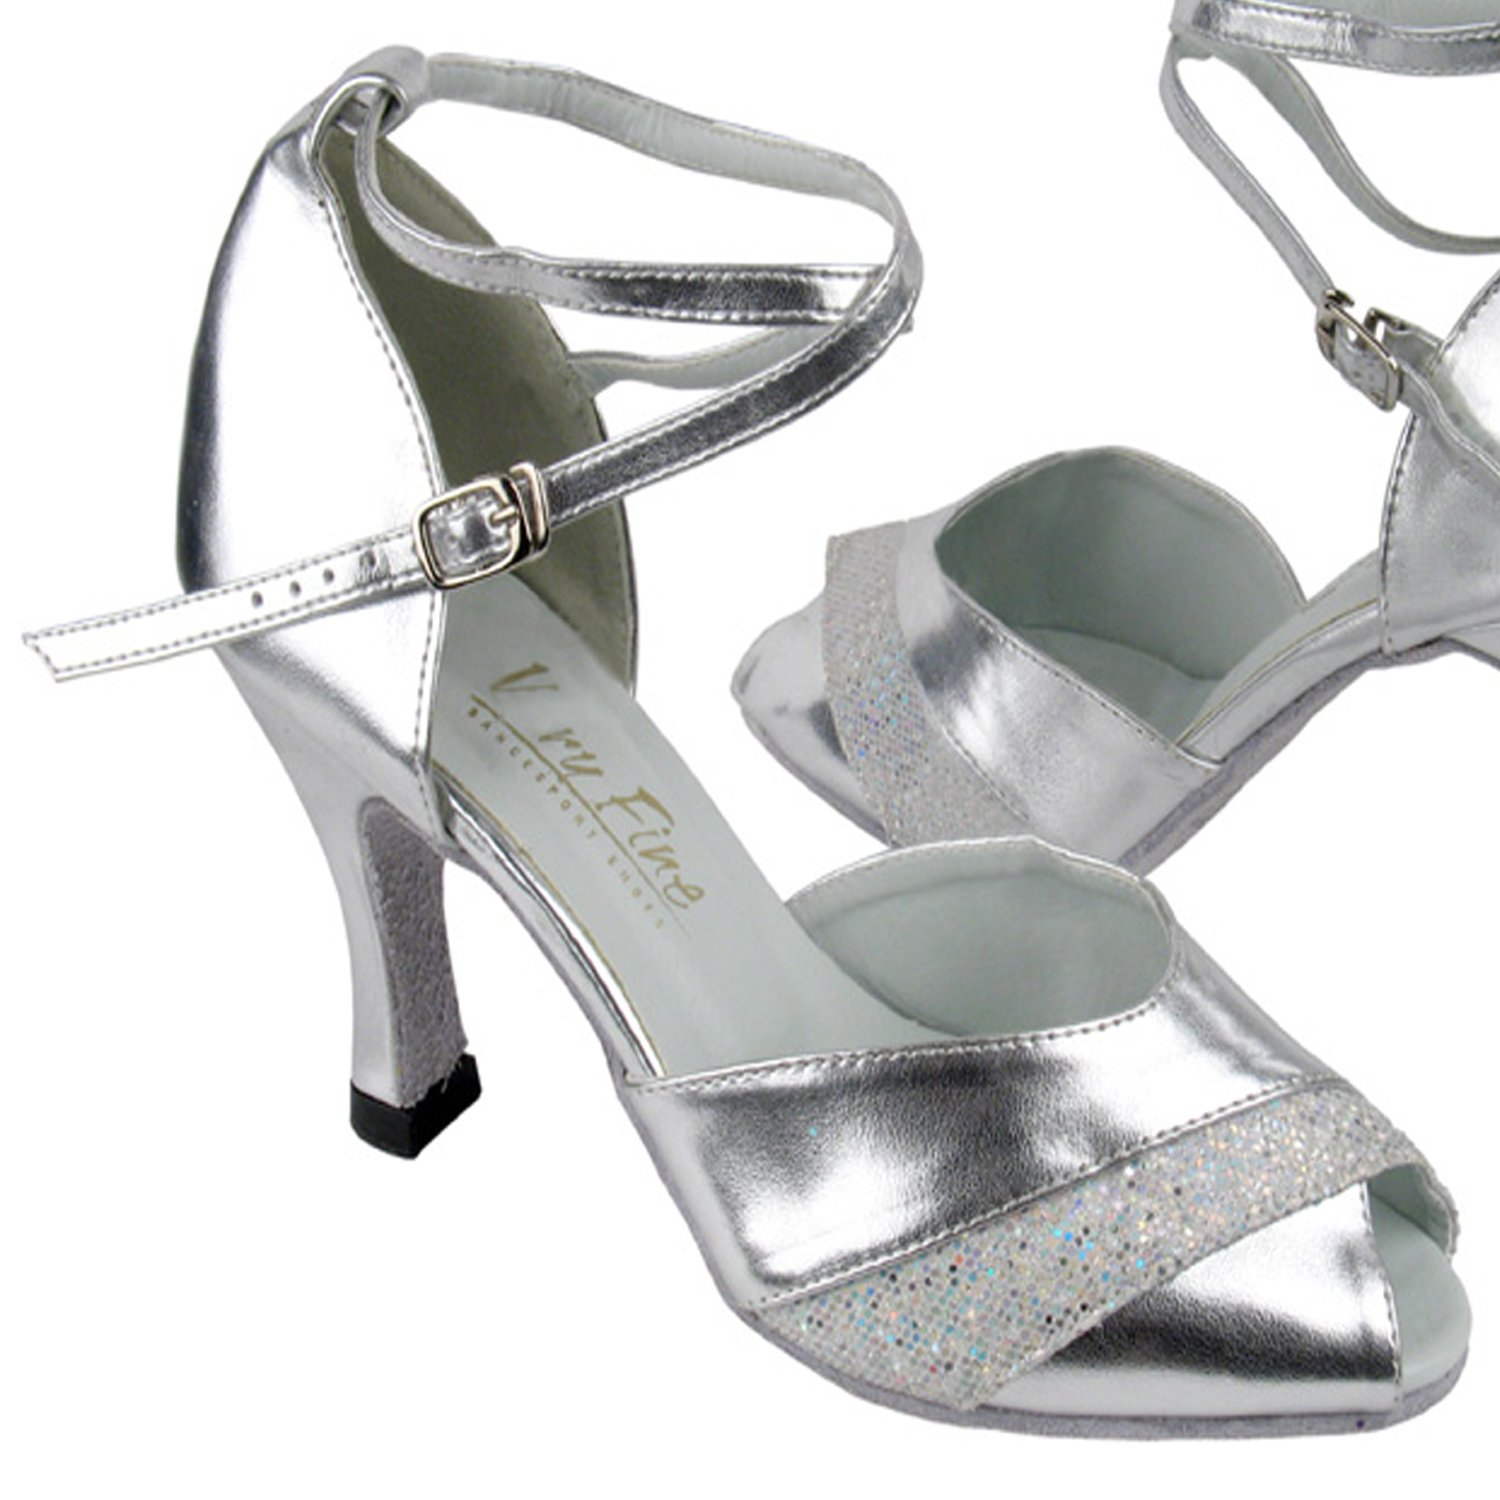 Ballroom Salsa Latin Clubing Latin Wedding 50 Shades of Silver Dance Dress Shoes 1